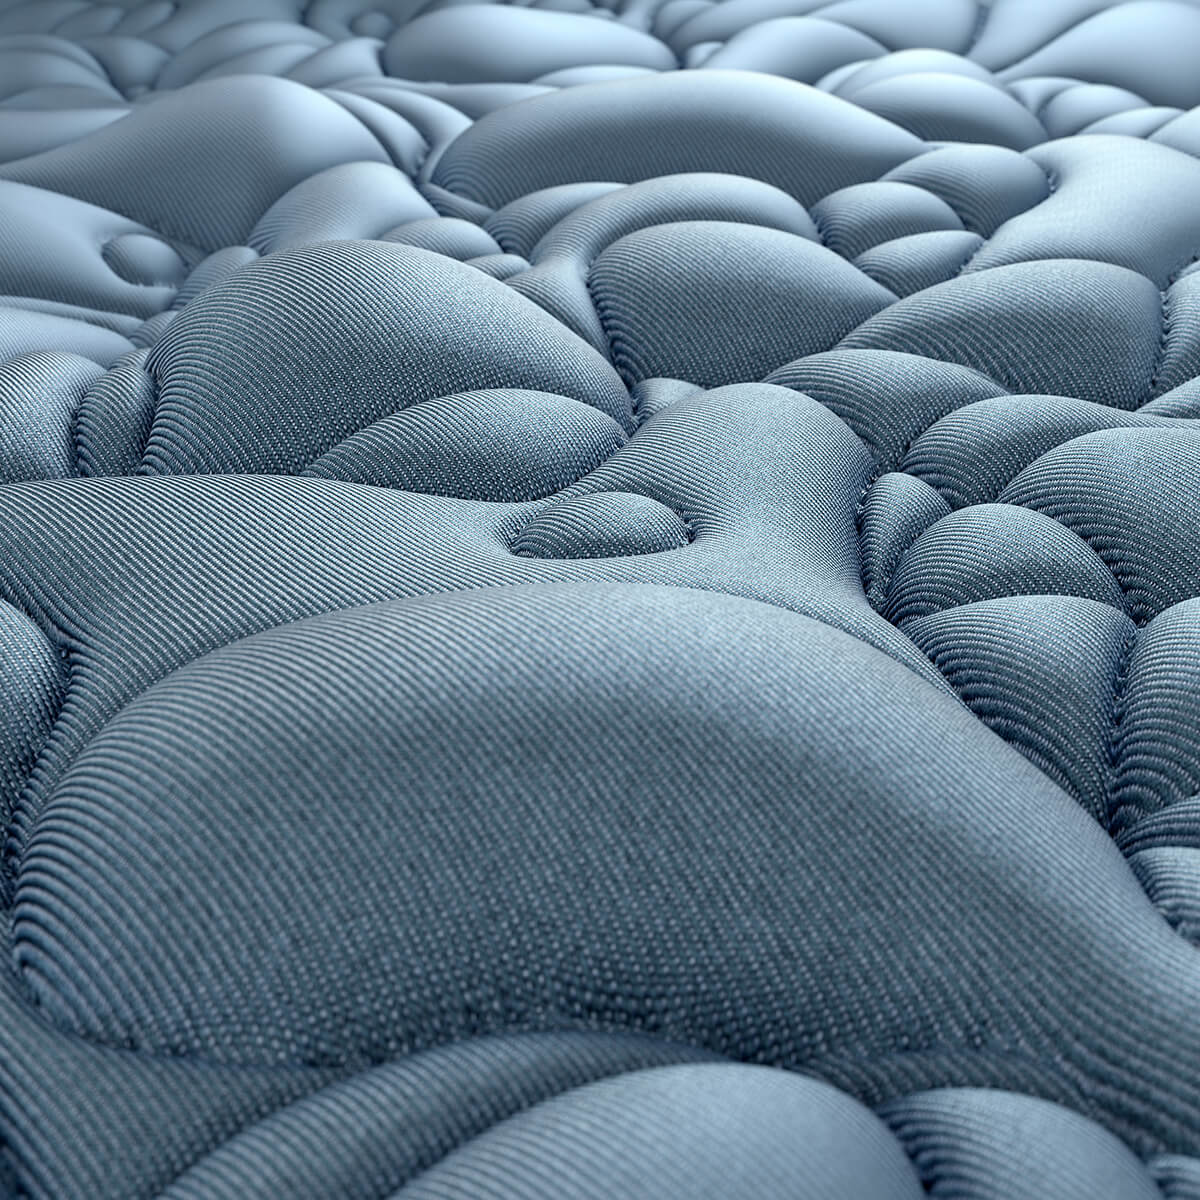 3D render of a flowy landscape made up out of denim